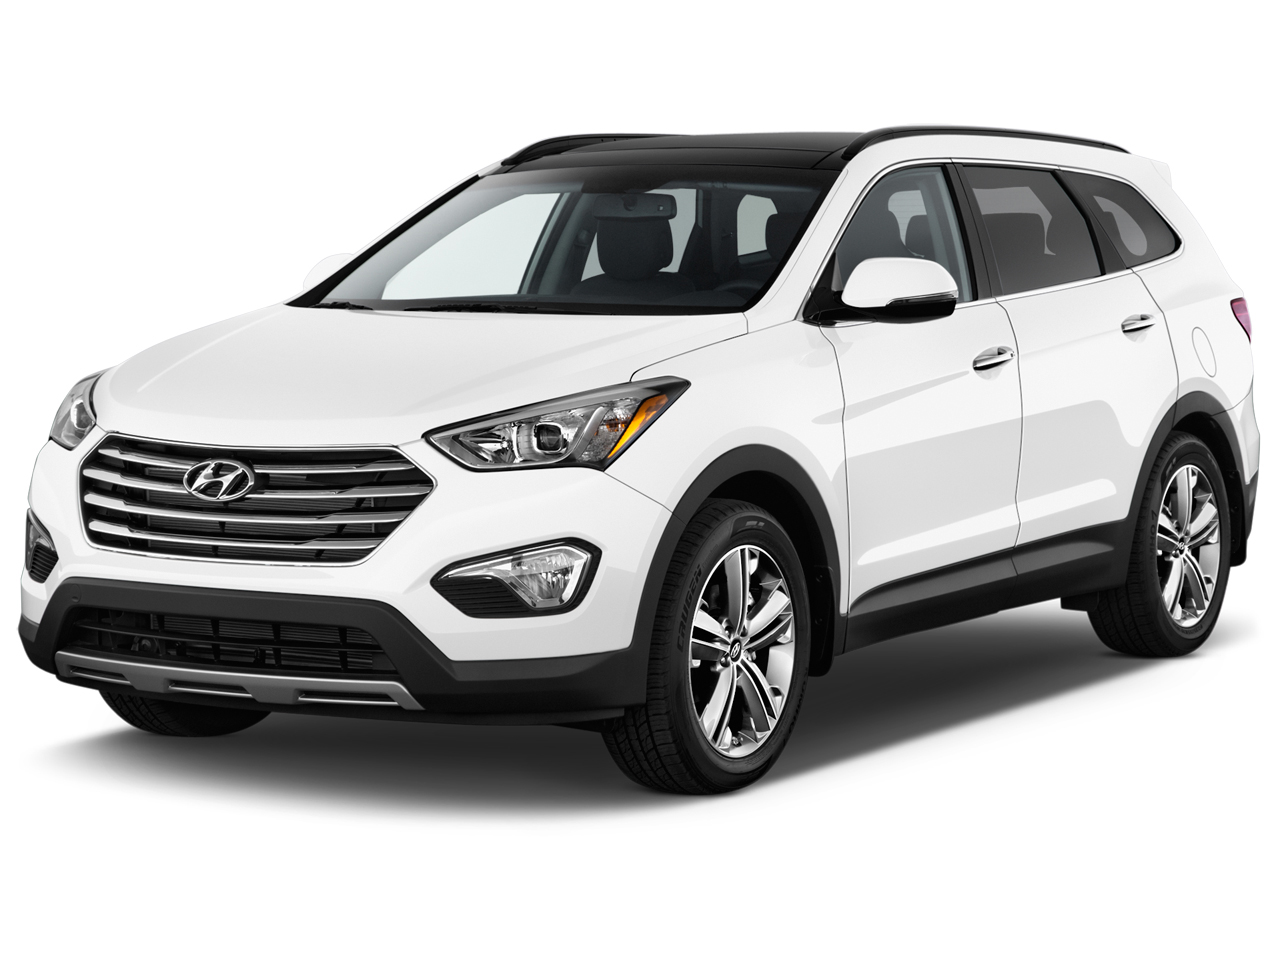 2015 hyundai santa fe review ratings specs prices and photos the car connection. Black Bedroom Furniture Sets. Home Design Ideas